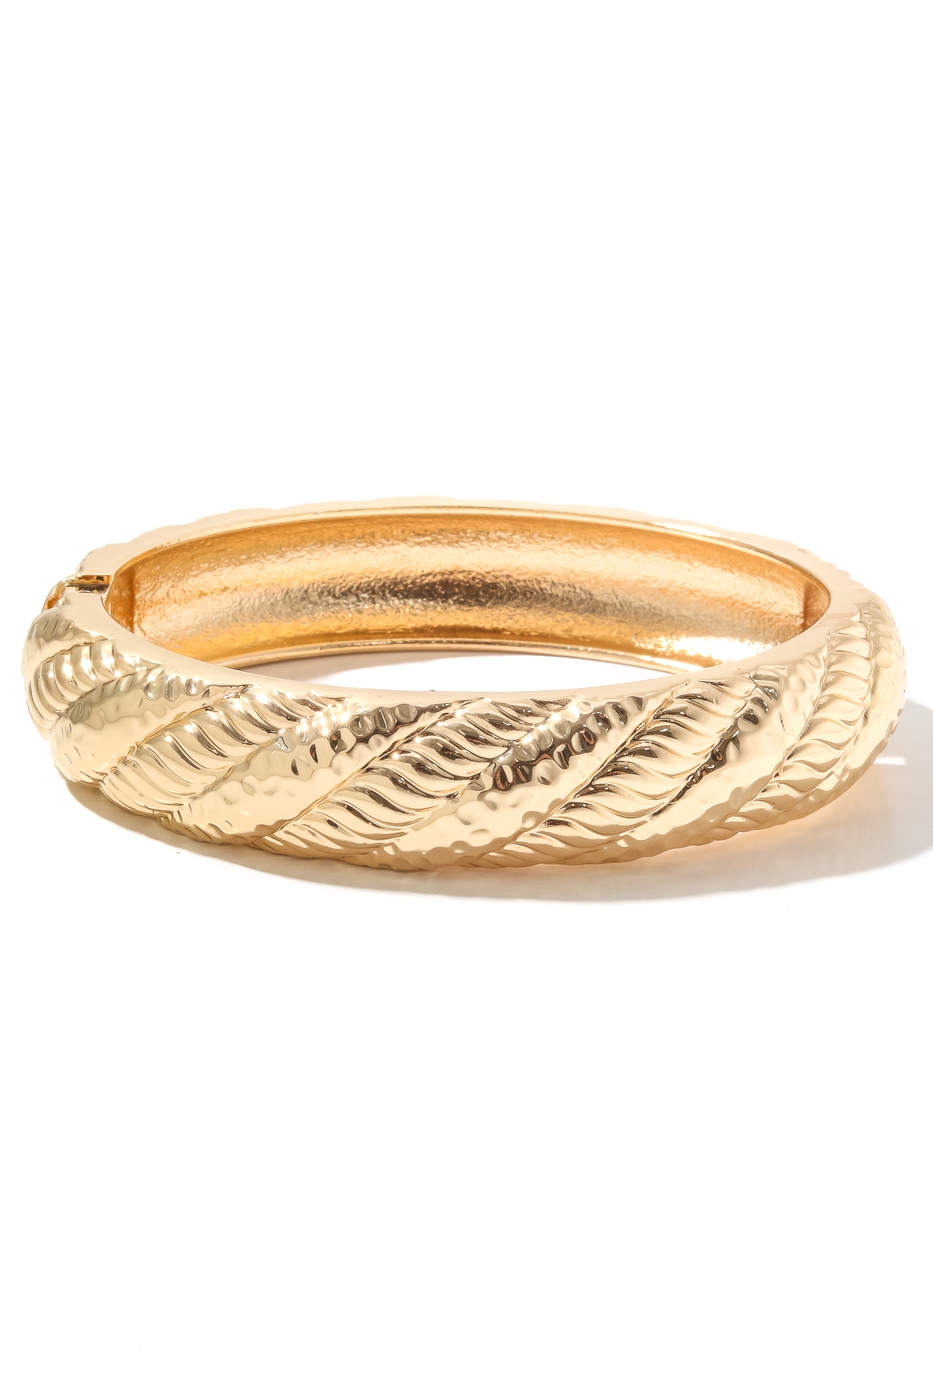 Metallic Rope Twist Bangle Bracelet - orangeshine.com